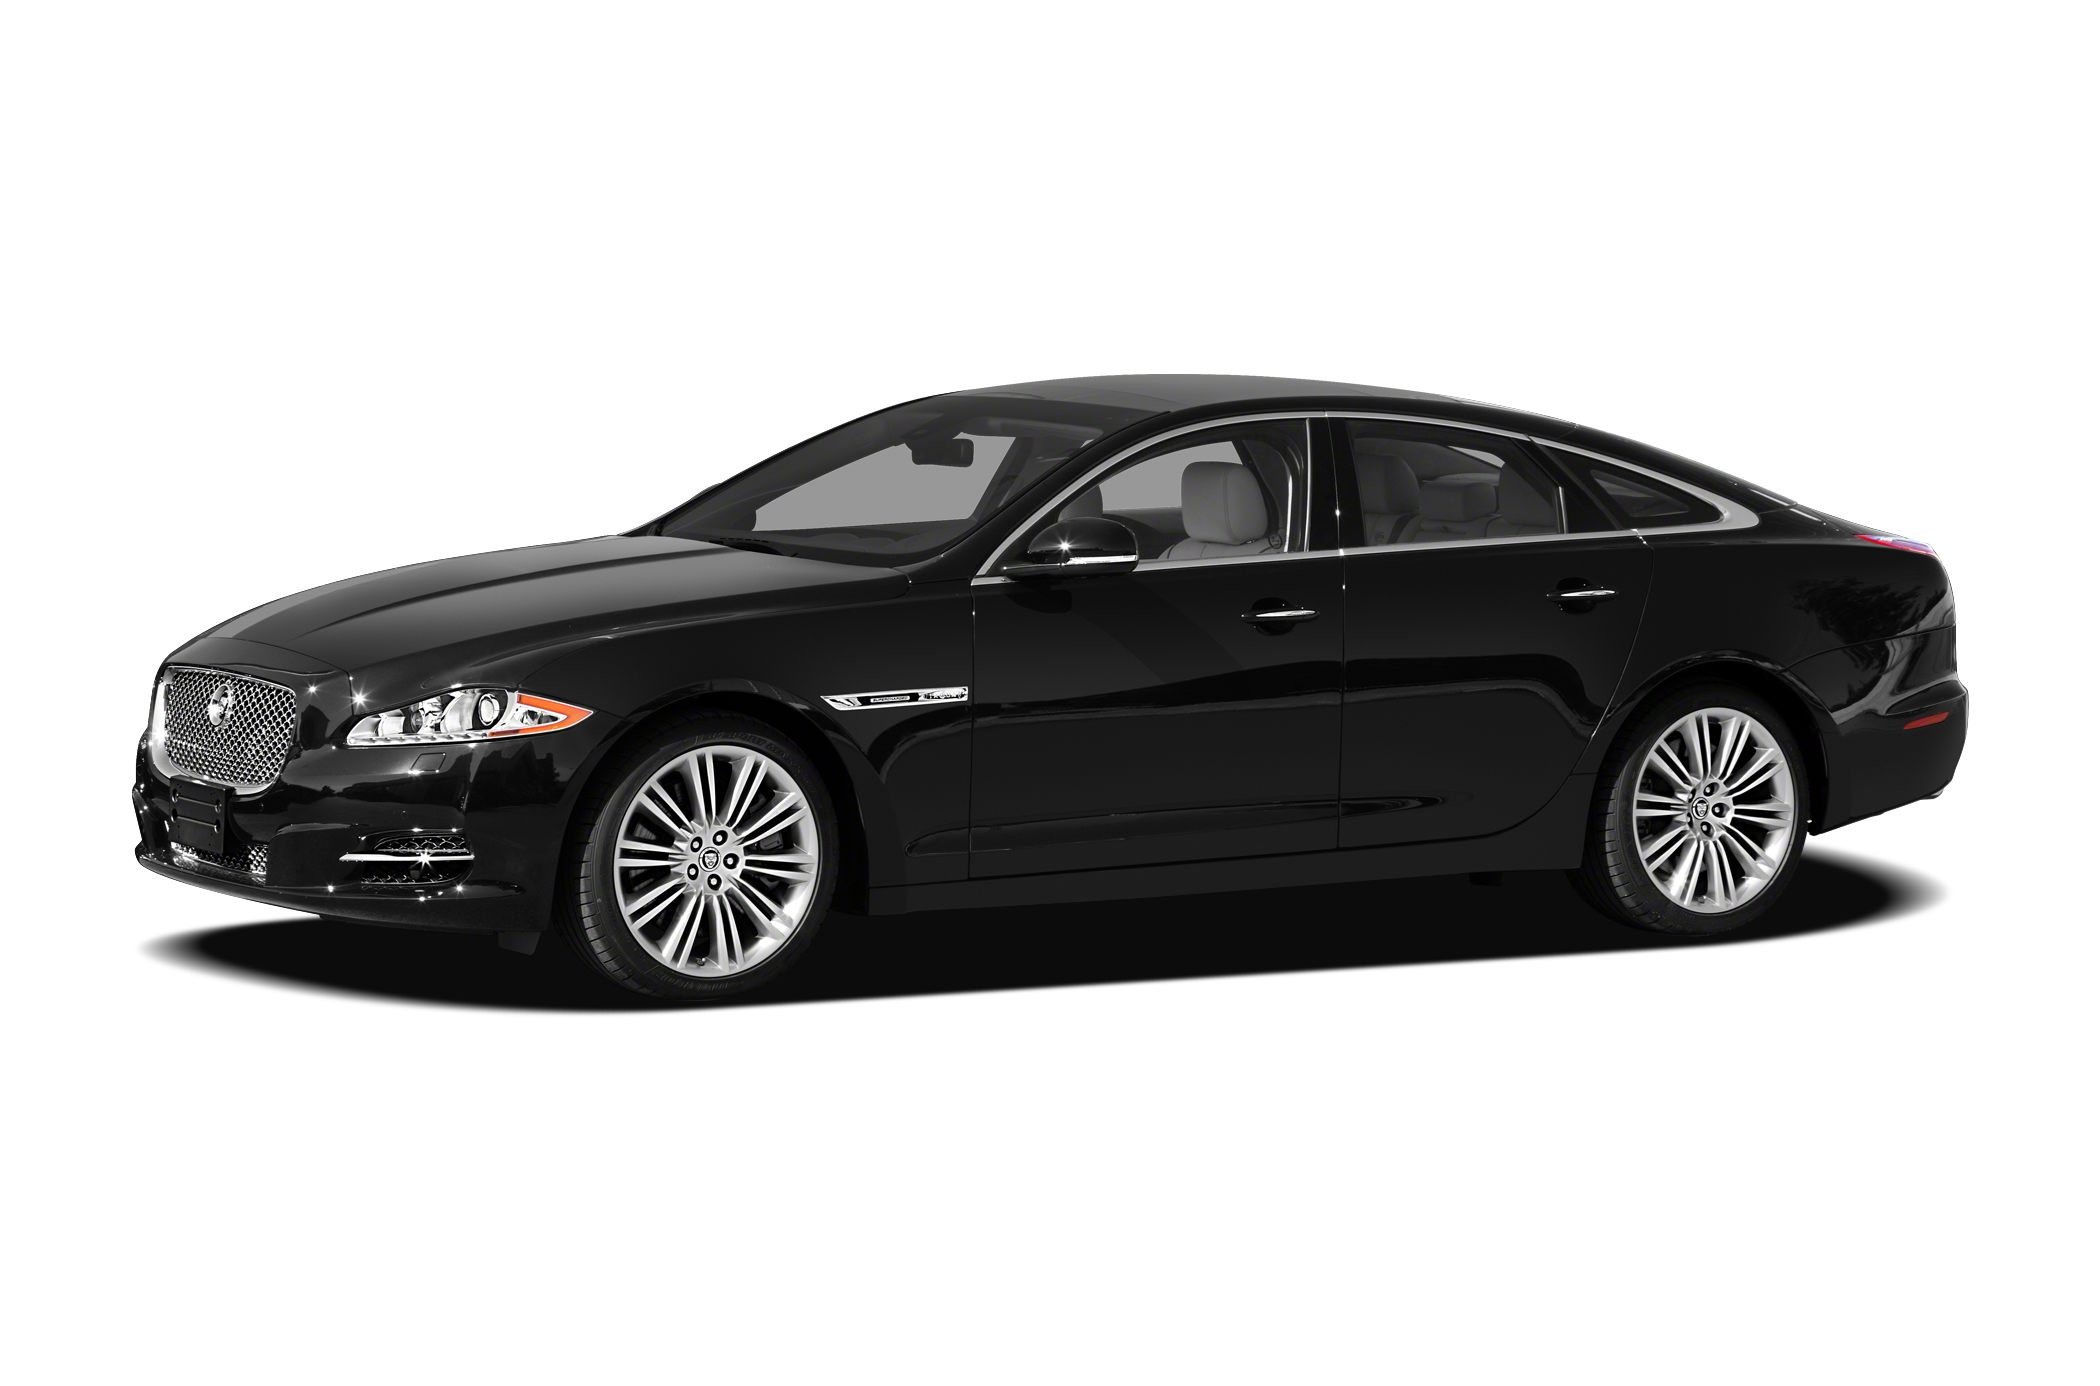 2010 Jaguar XJ